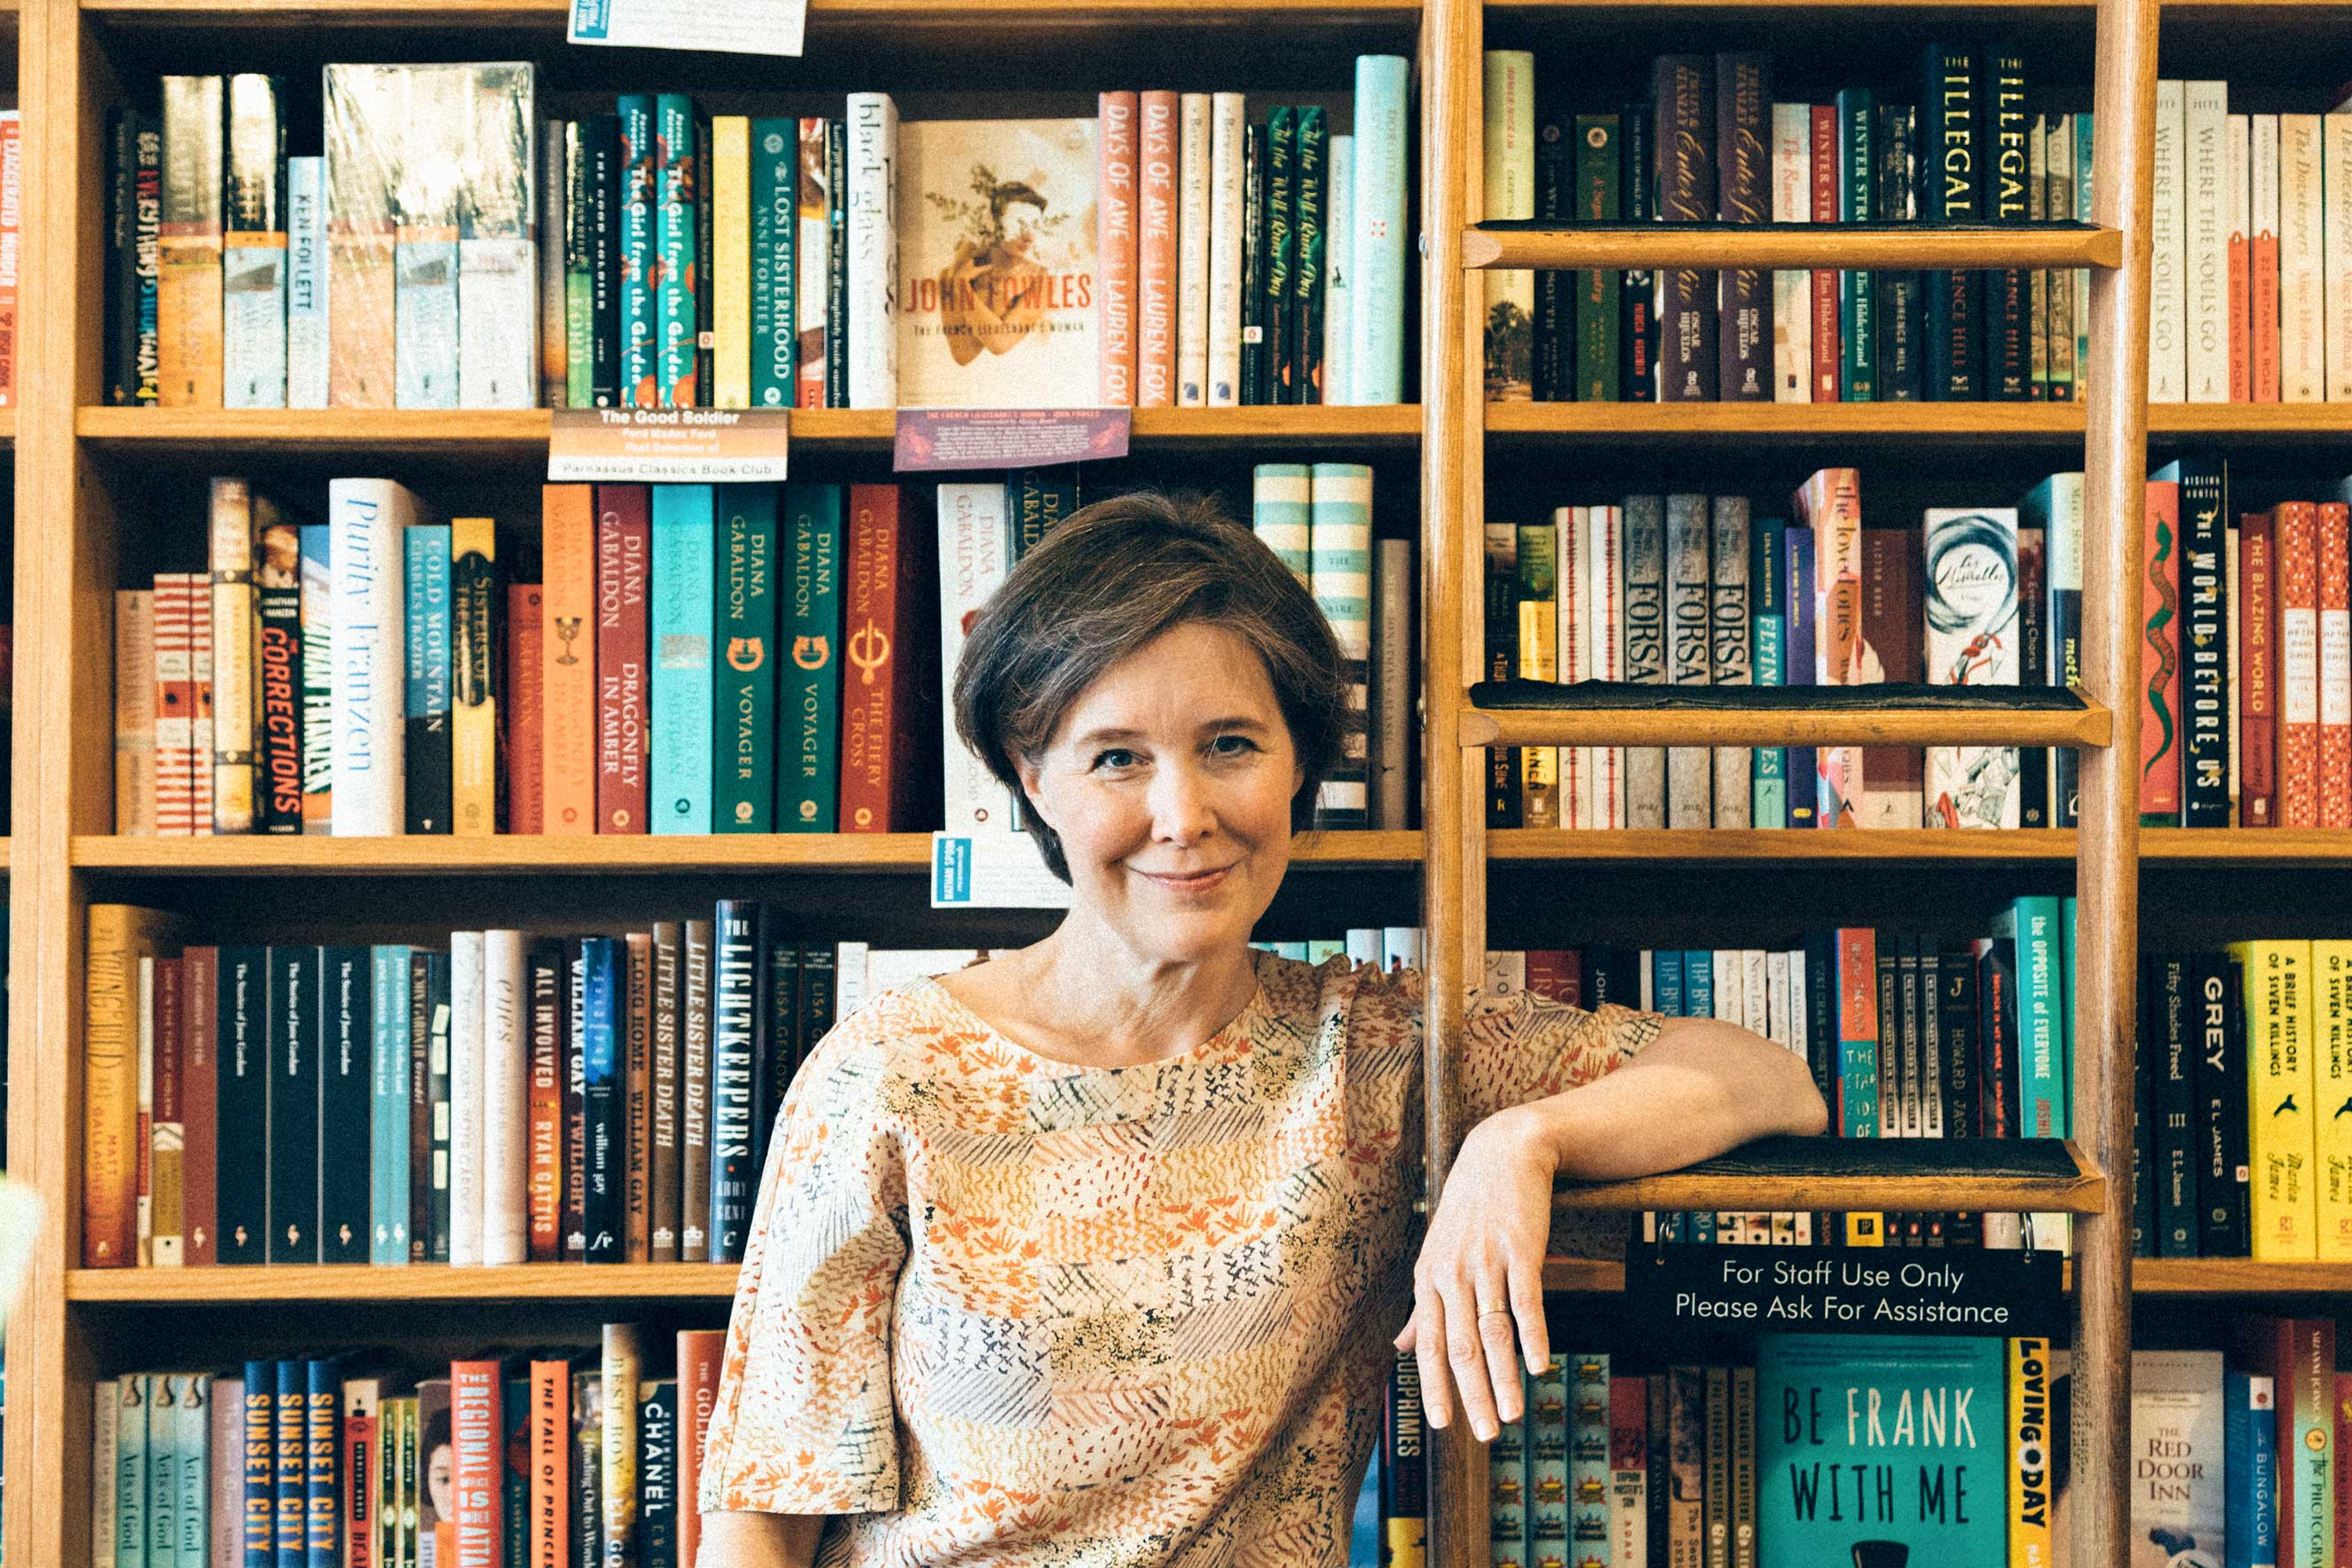 Portrait of author Ann Patchett in her bookstore, Parnassus Books, in Nasville on 15 April 2016